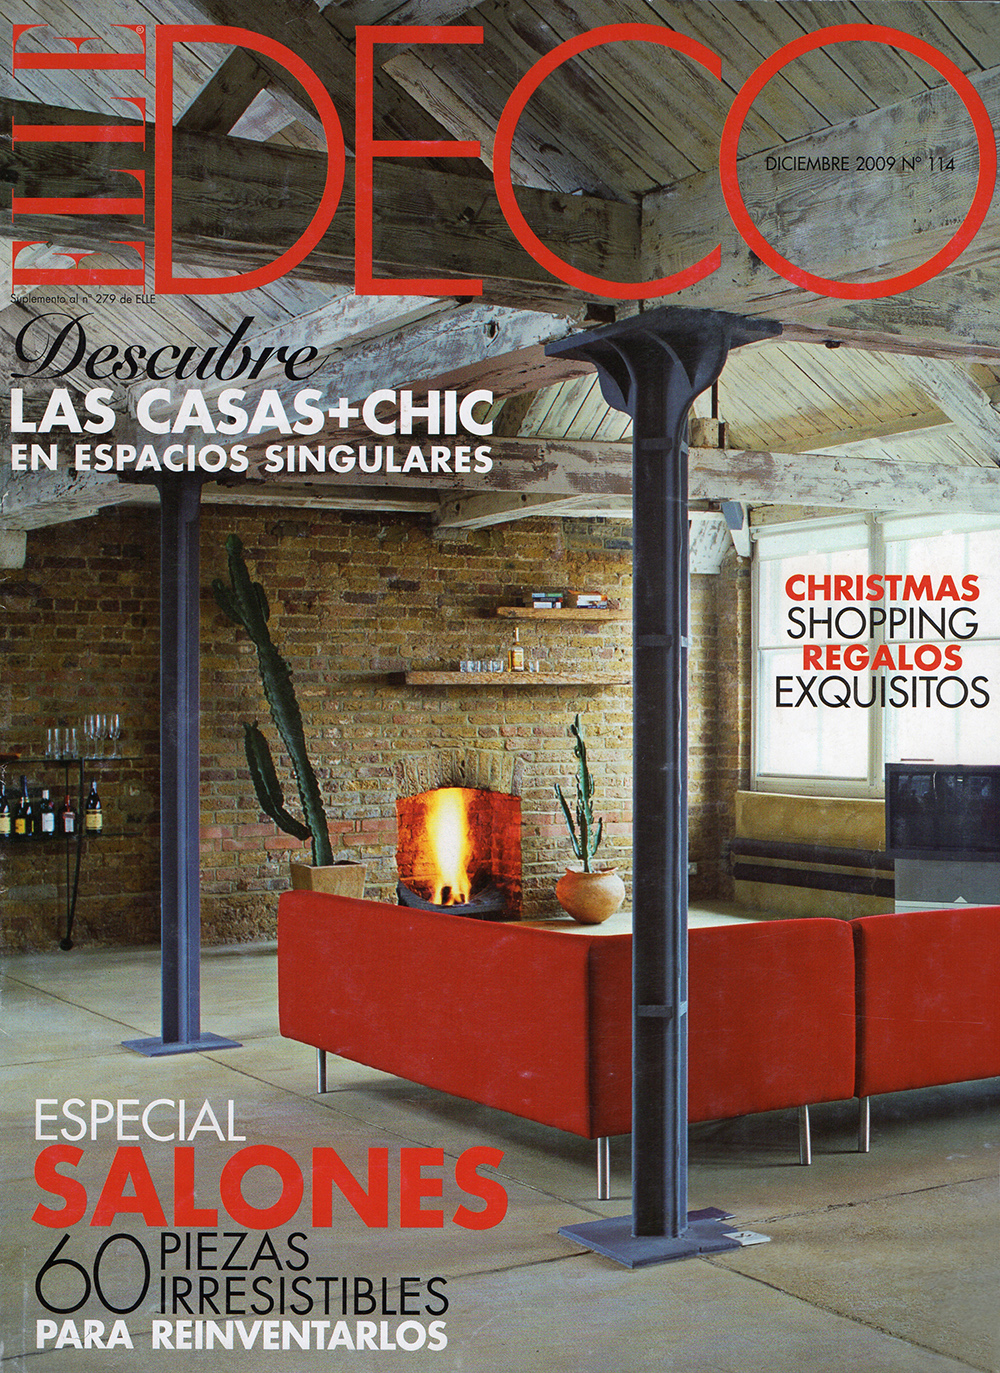 Elle Deco Spain - Loft in Shoreditch, London